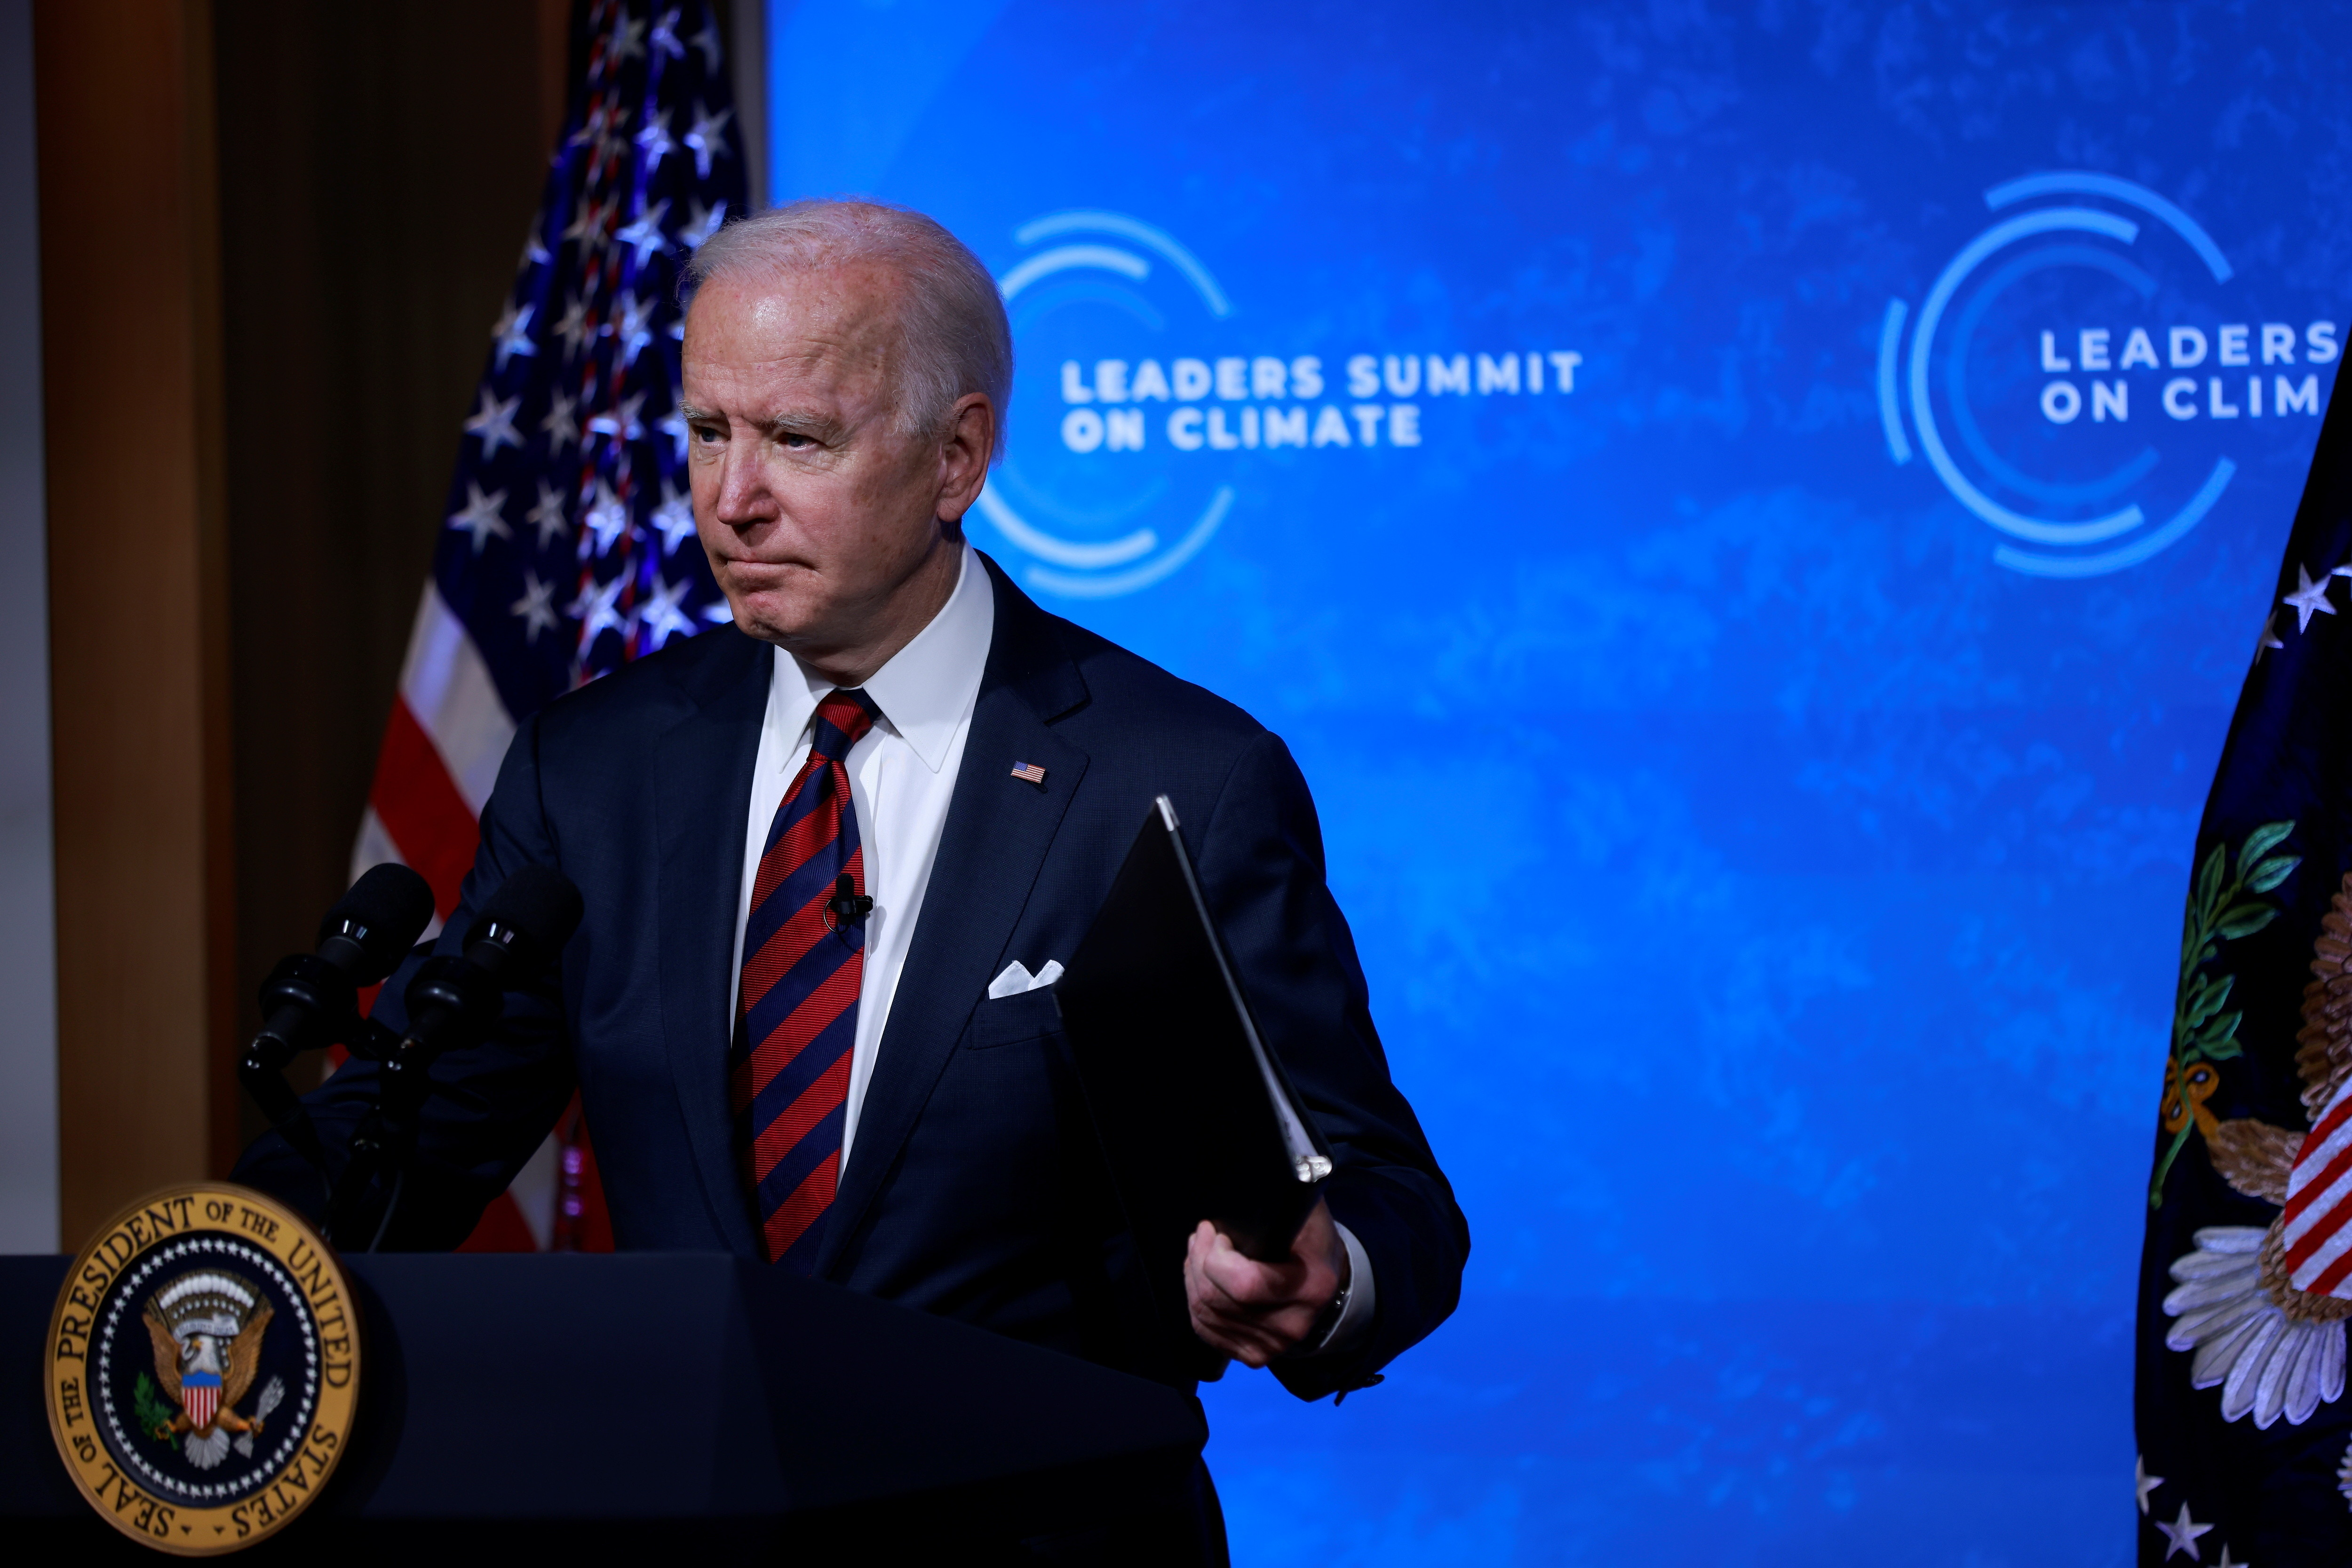 U.S. President Joe Biden participates in a virtual Climate Summit with world leaders in the East Room at the White House in Washington, U.S., April 22, 2021. REUTERS/Tom Brenner - RC201N9LID7Y